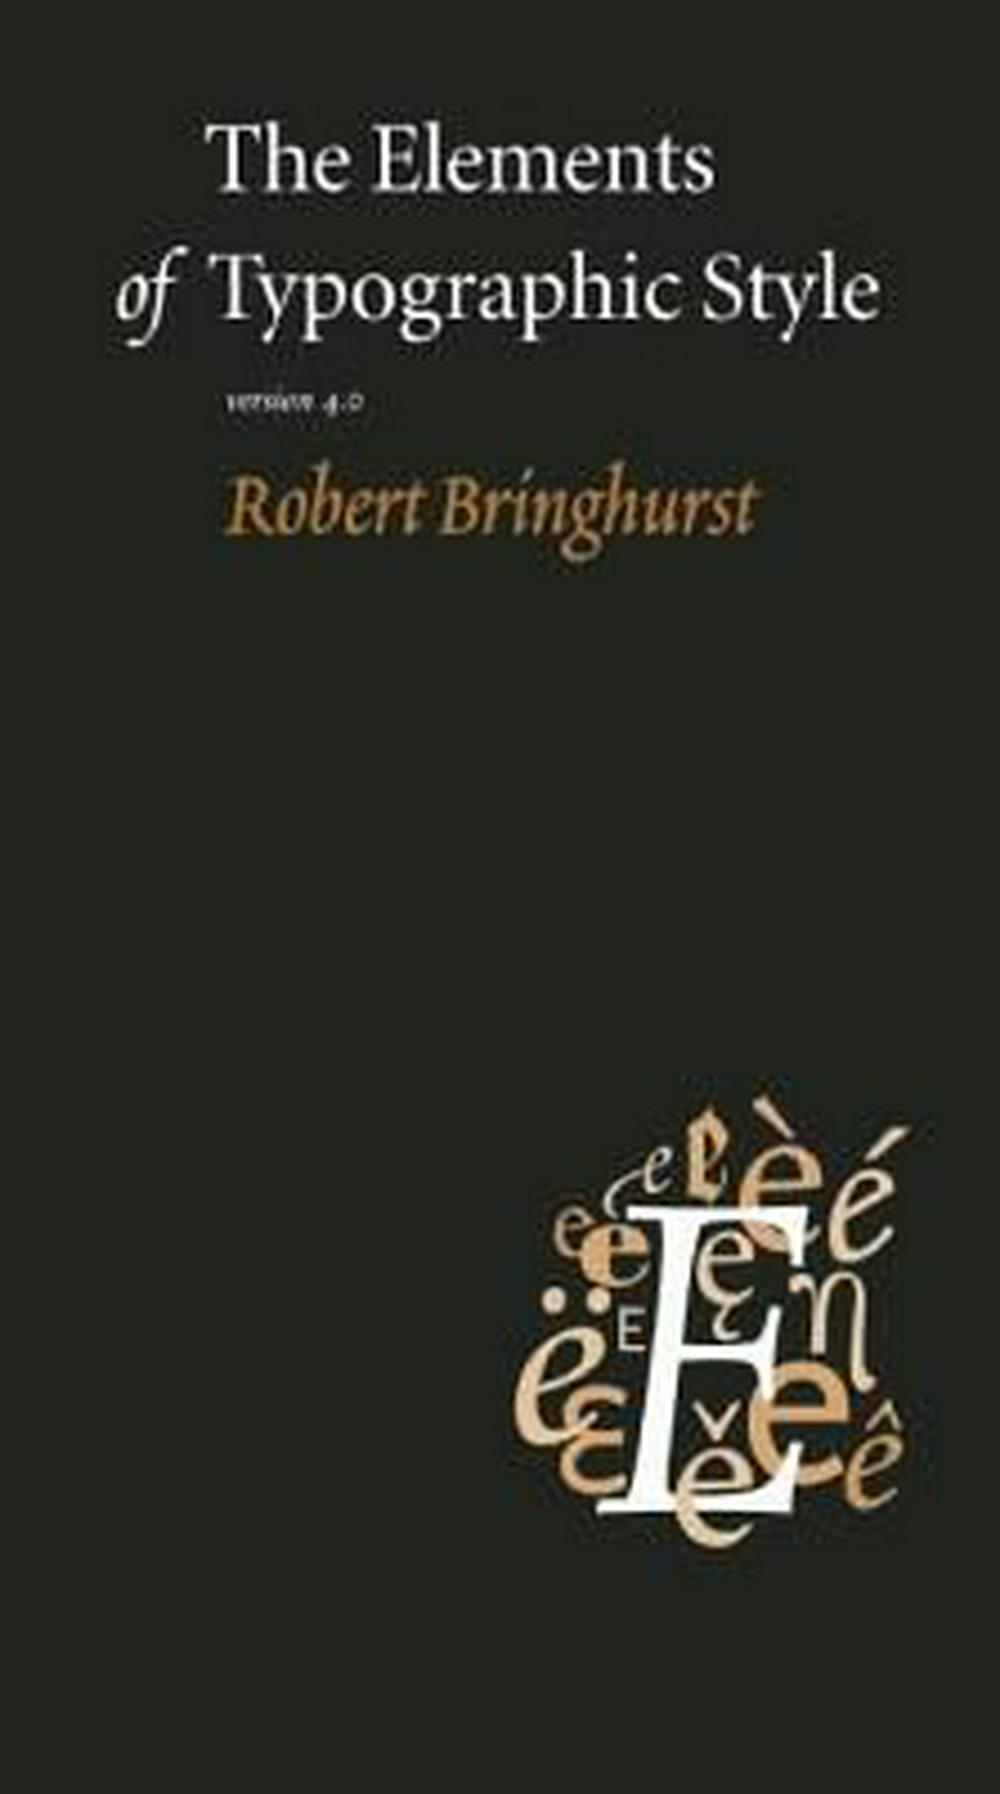 The Elements of Typographic Style by Robert Bringhurst, ISBN: 9780881792126